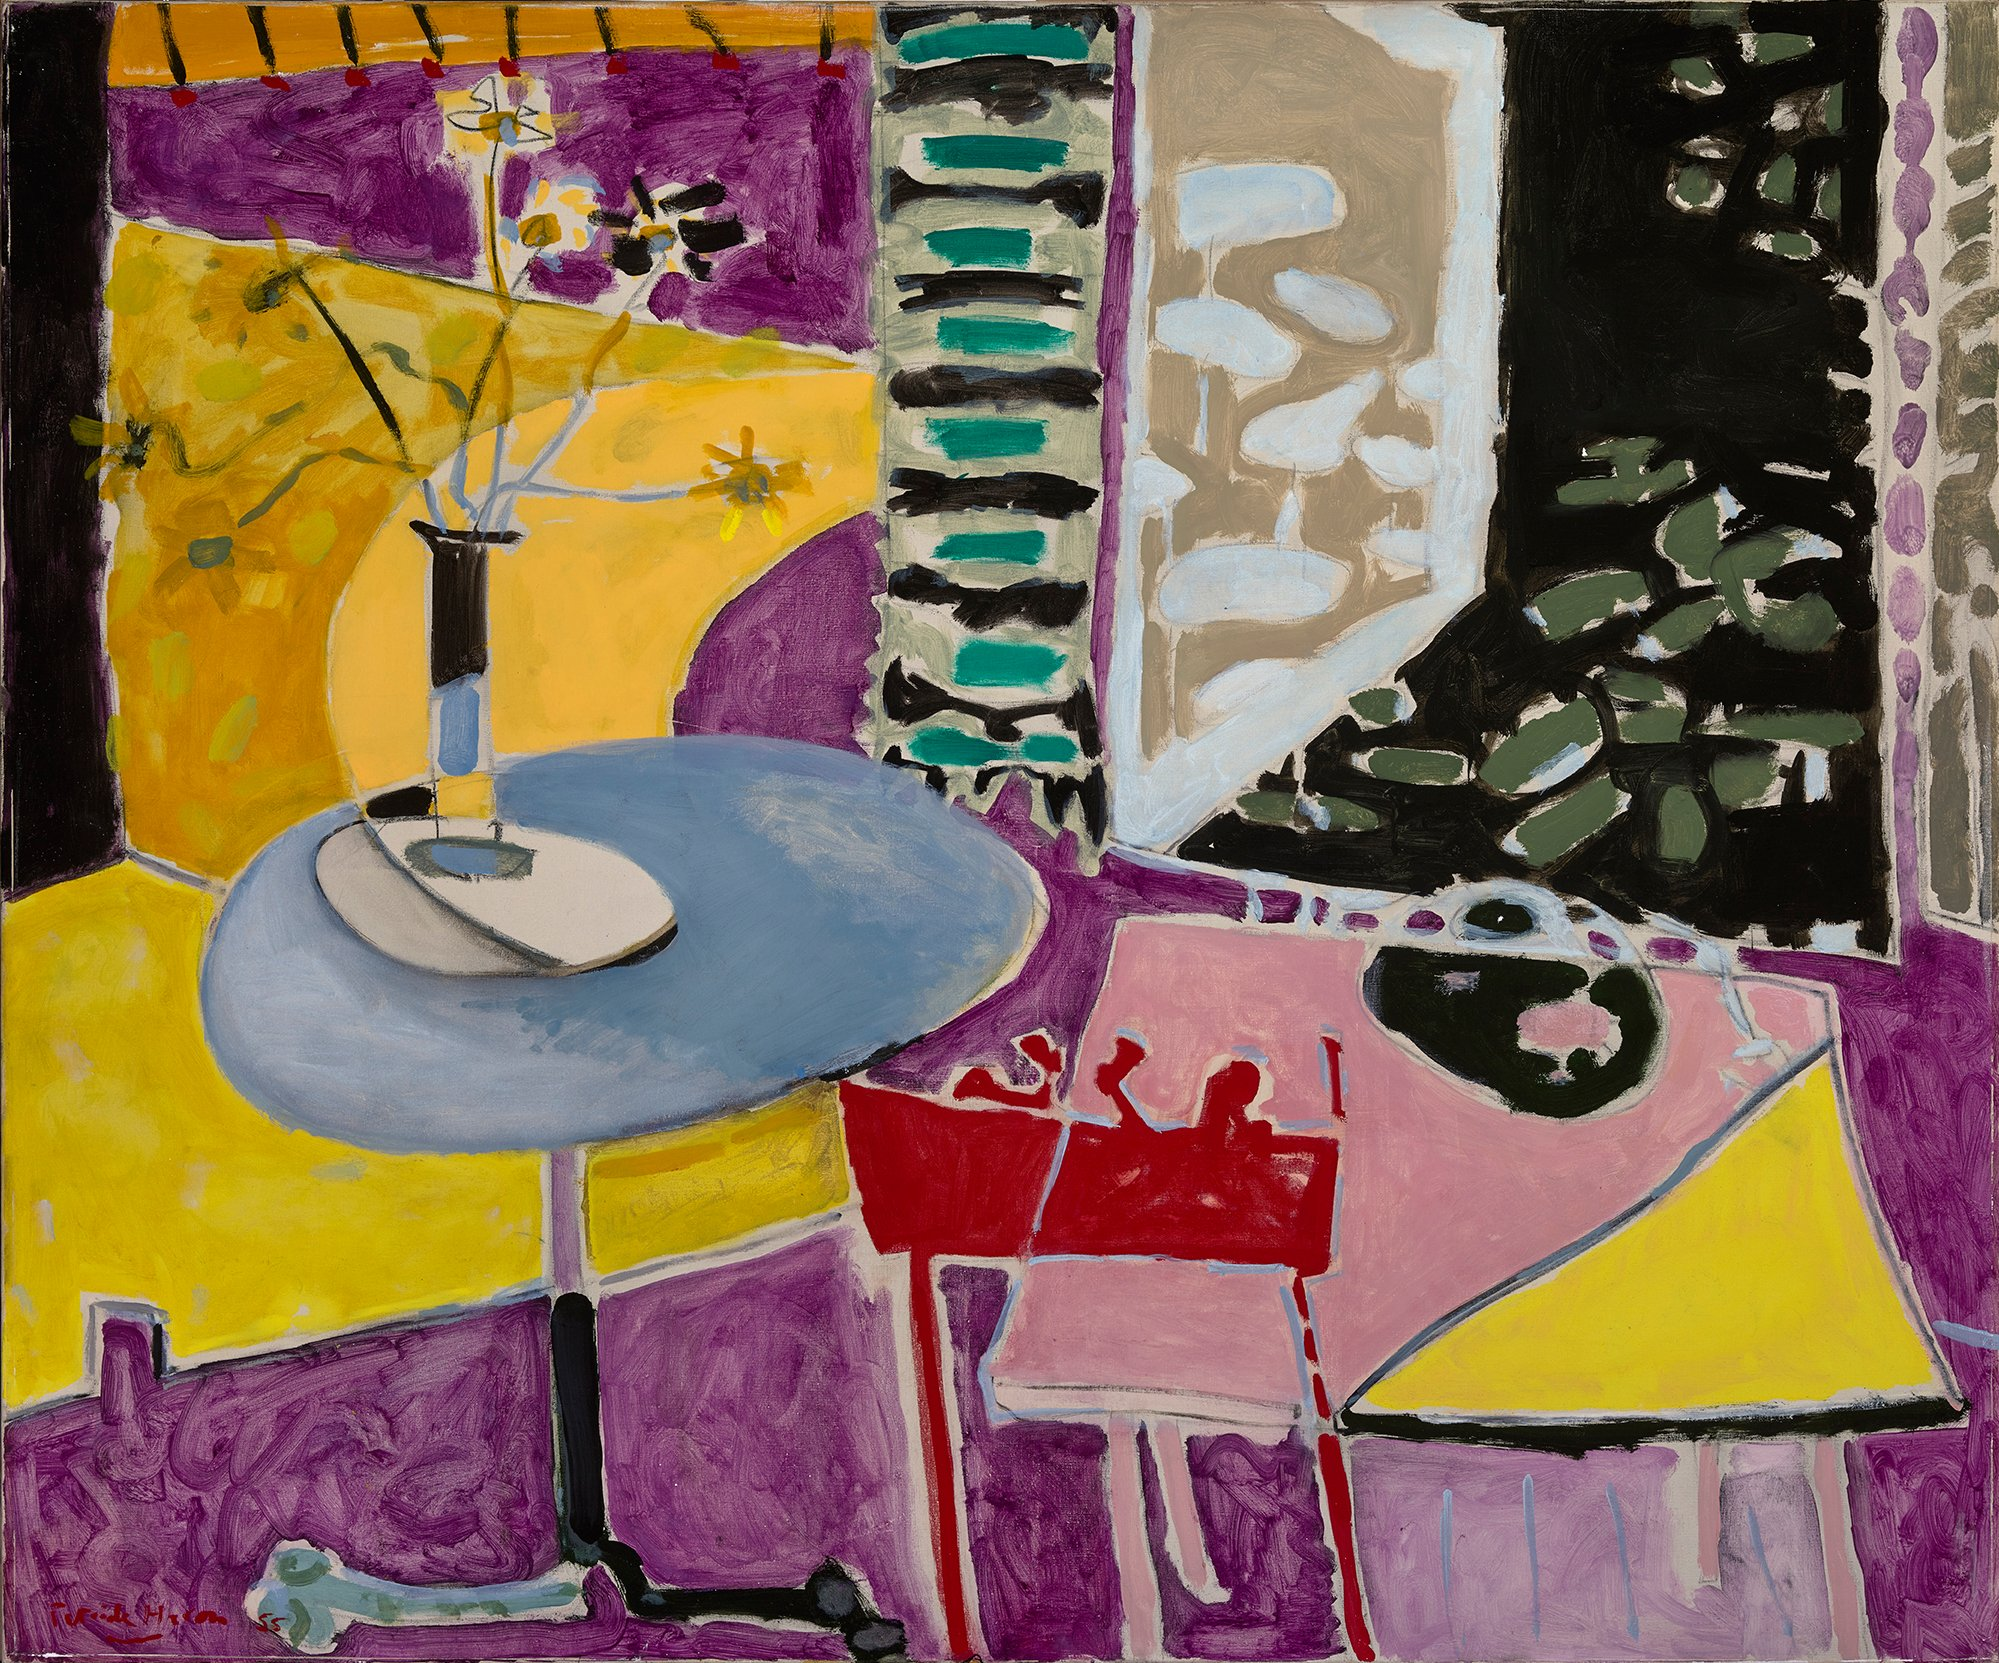 Patrick Heron, Interior with Garden Window, 1955